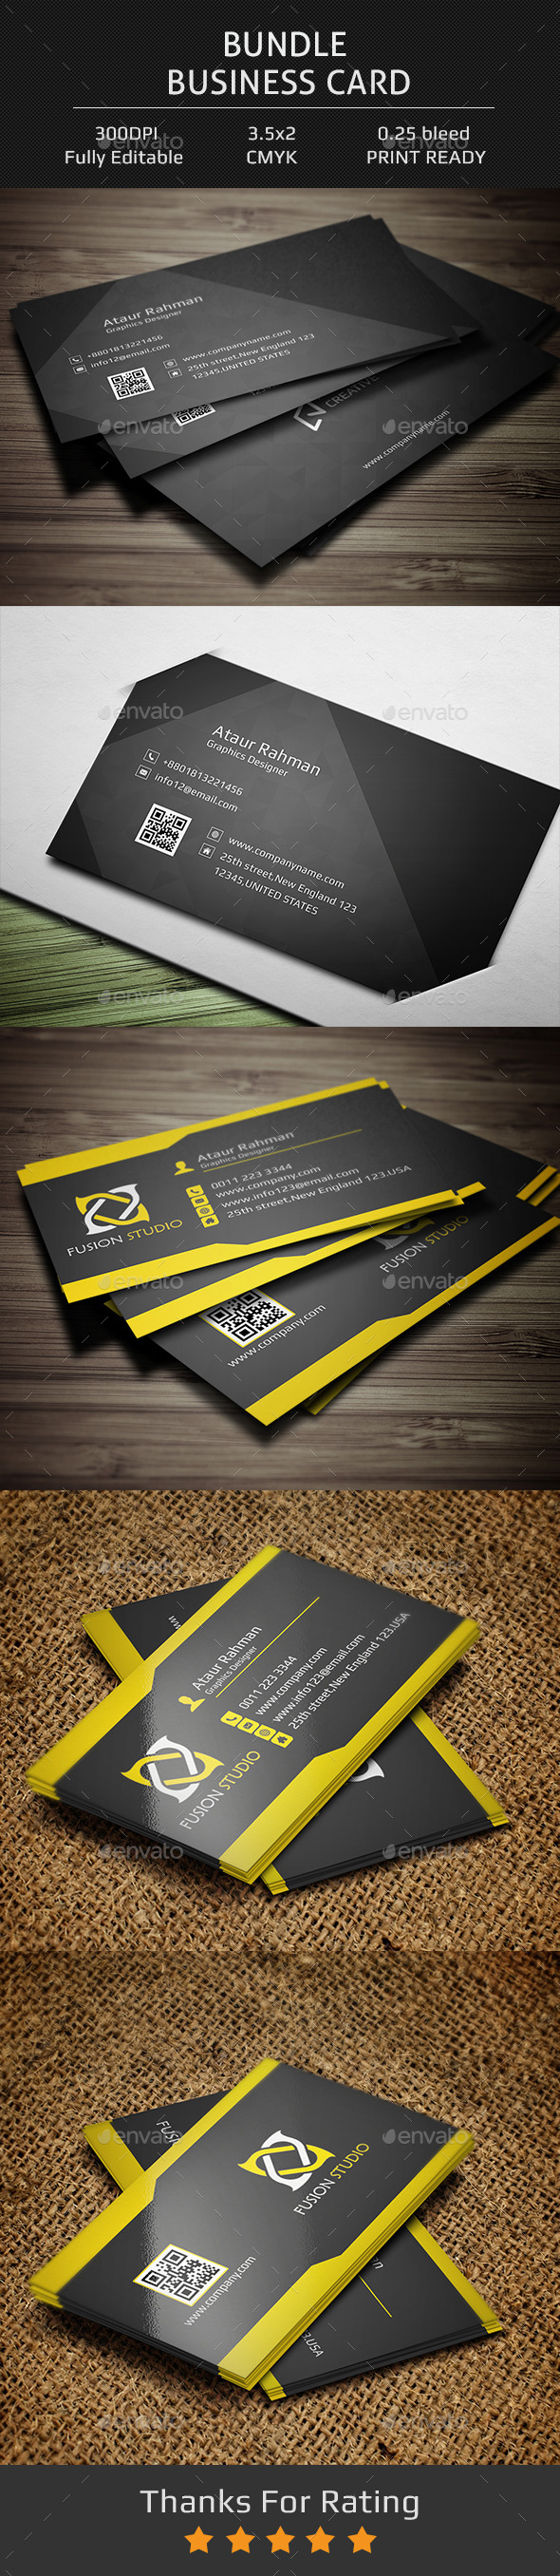 Bundle Business Card  - Creative Business Cards